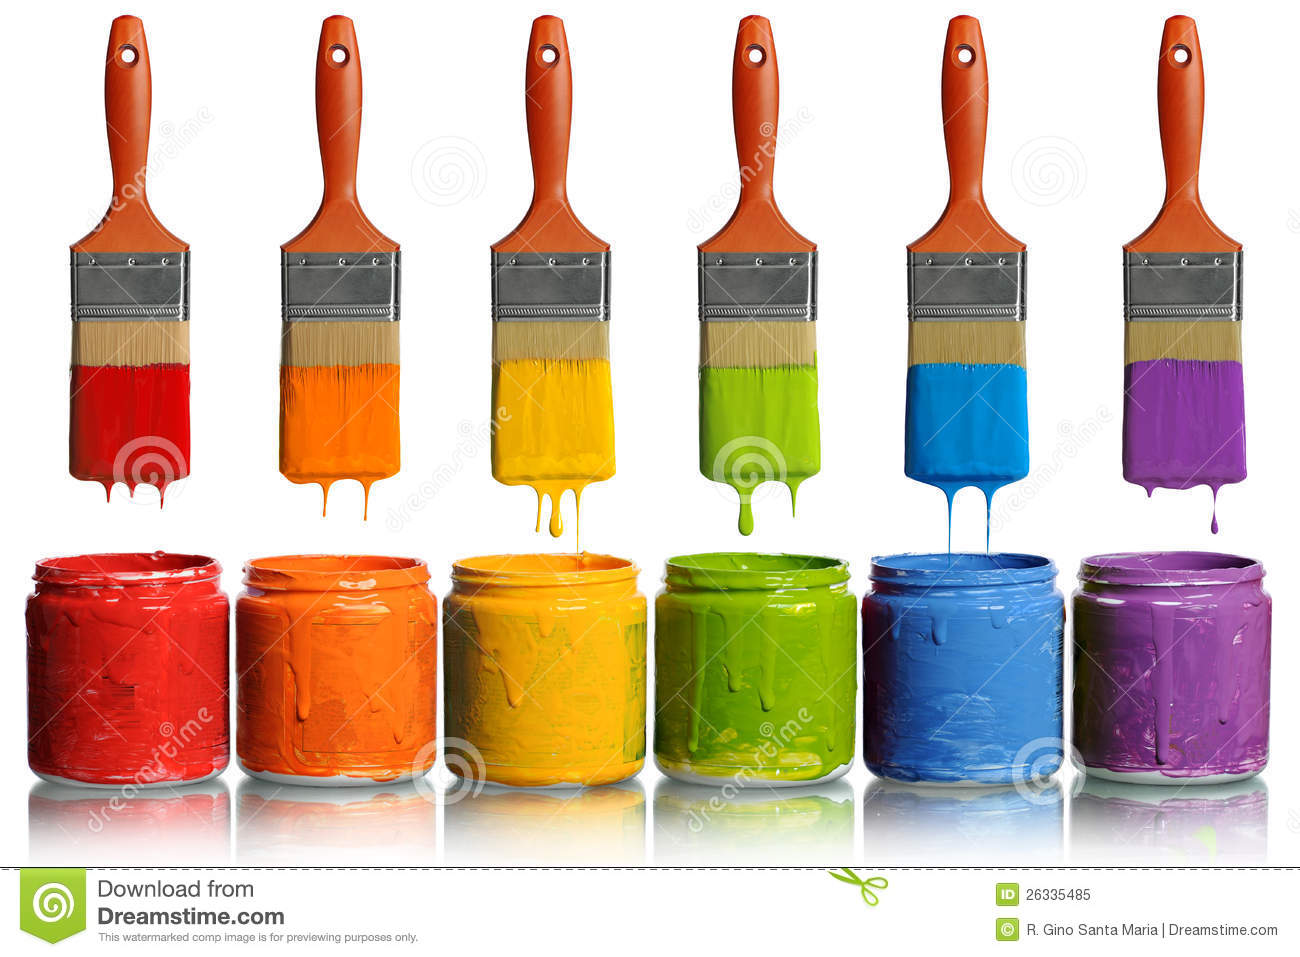 Malerpinsel Clipart Paintbrushes Dripping Into Paint Containers Royalty Free